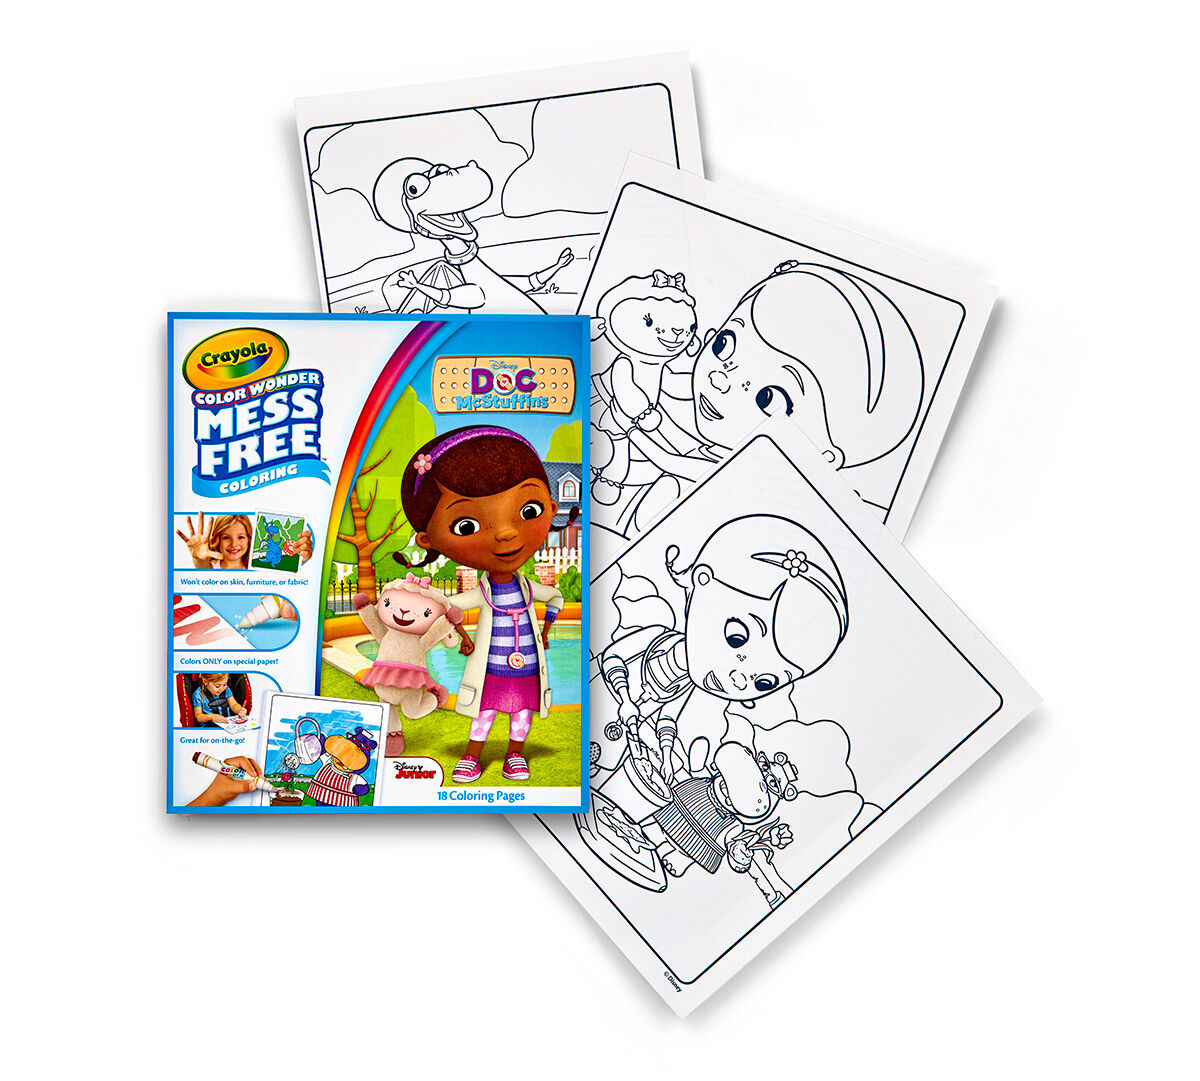 Doc mcstuffins coloring pages to color online - Color Wonder Coloring Pad Doc Mcstuffins